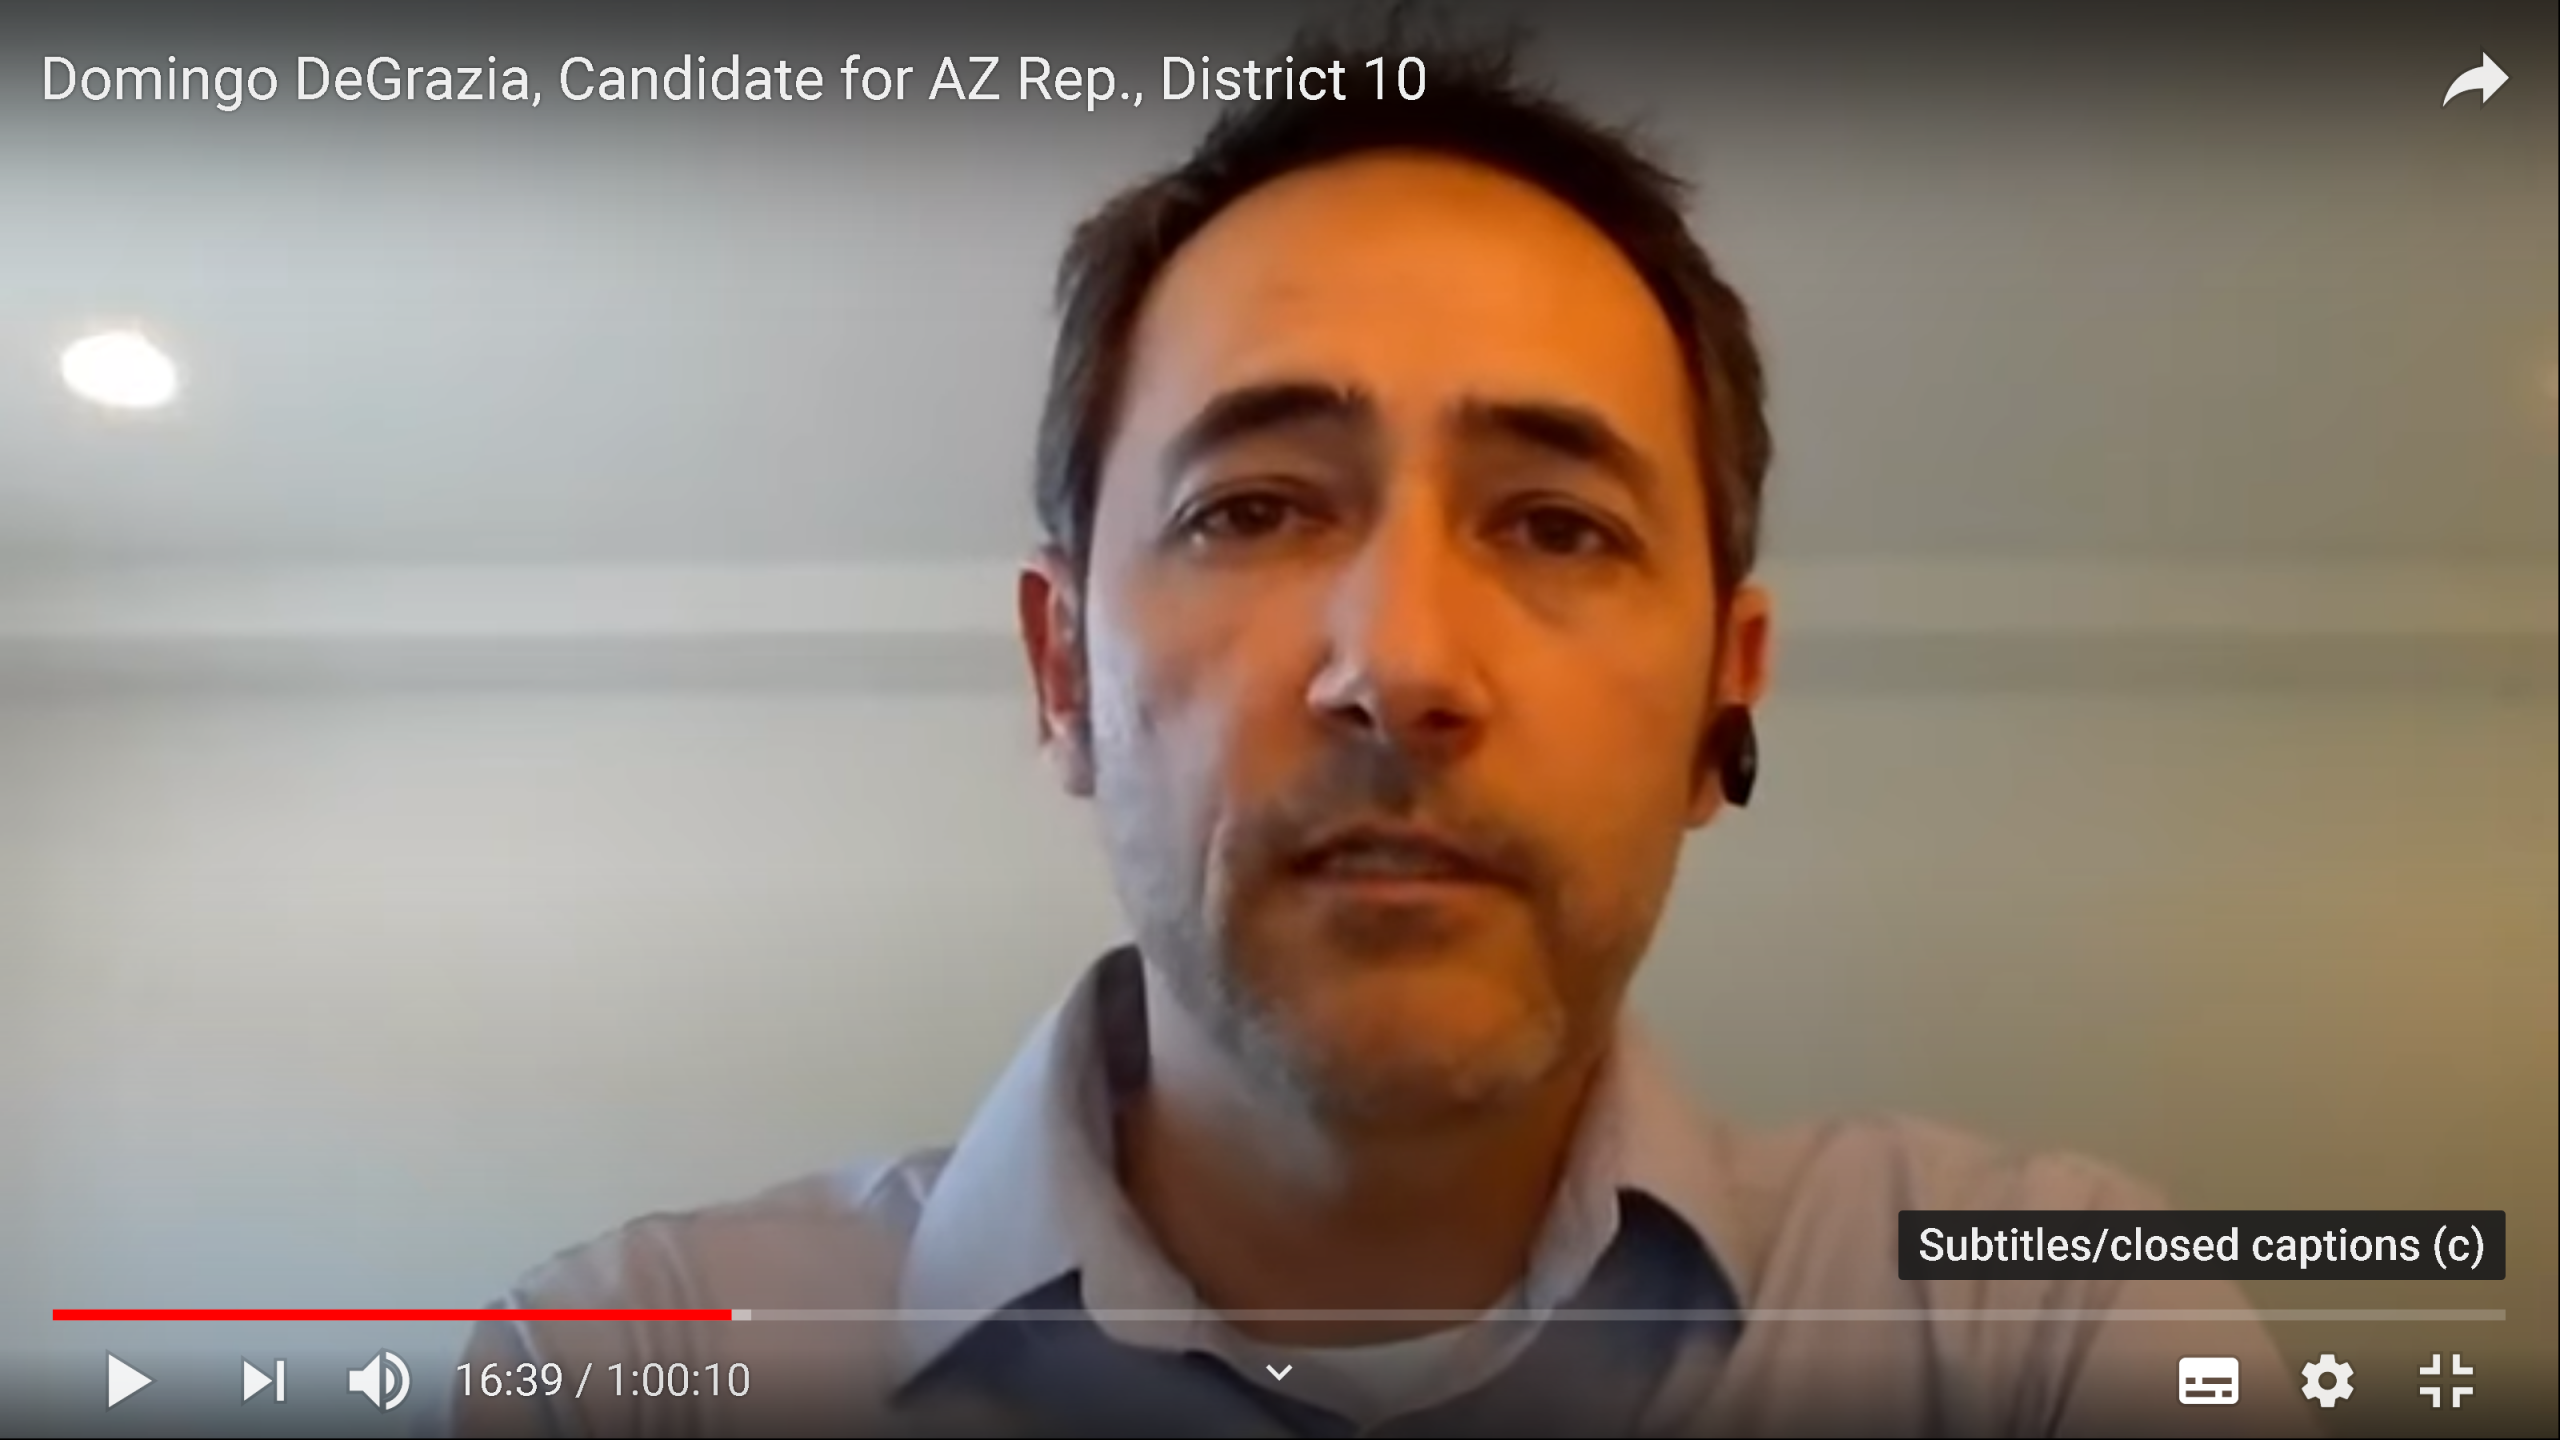 WATCH: Domingo DeGrazia, Candidate for AZ Rep., District 10